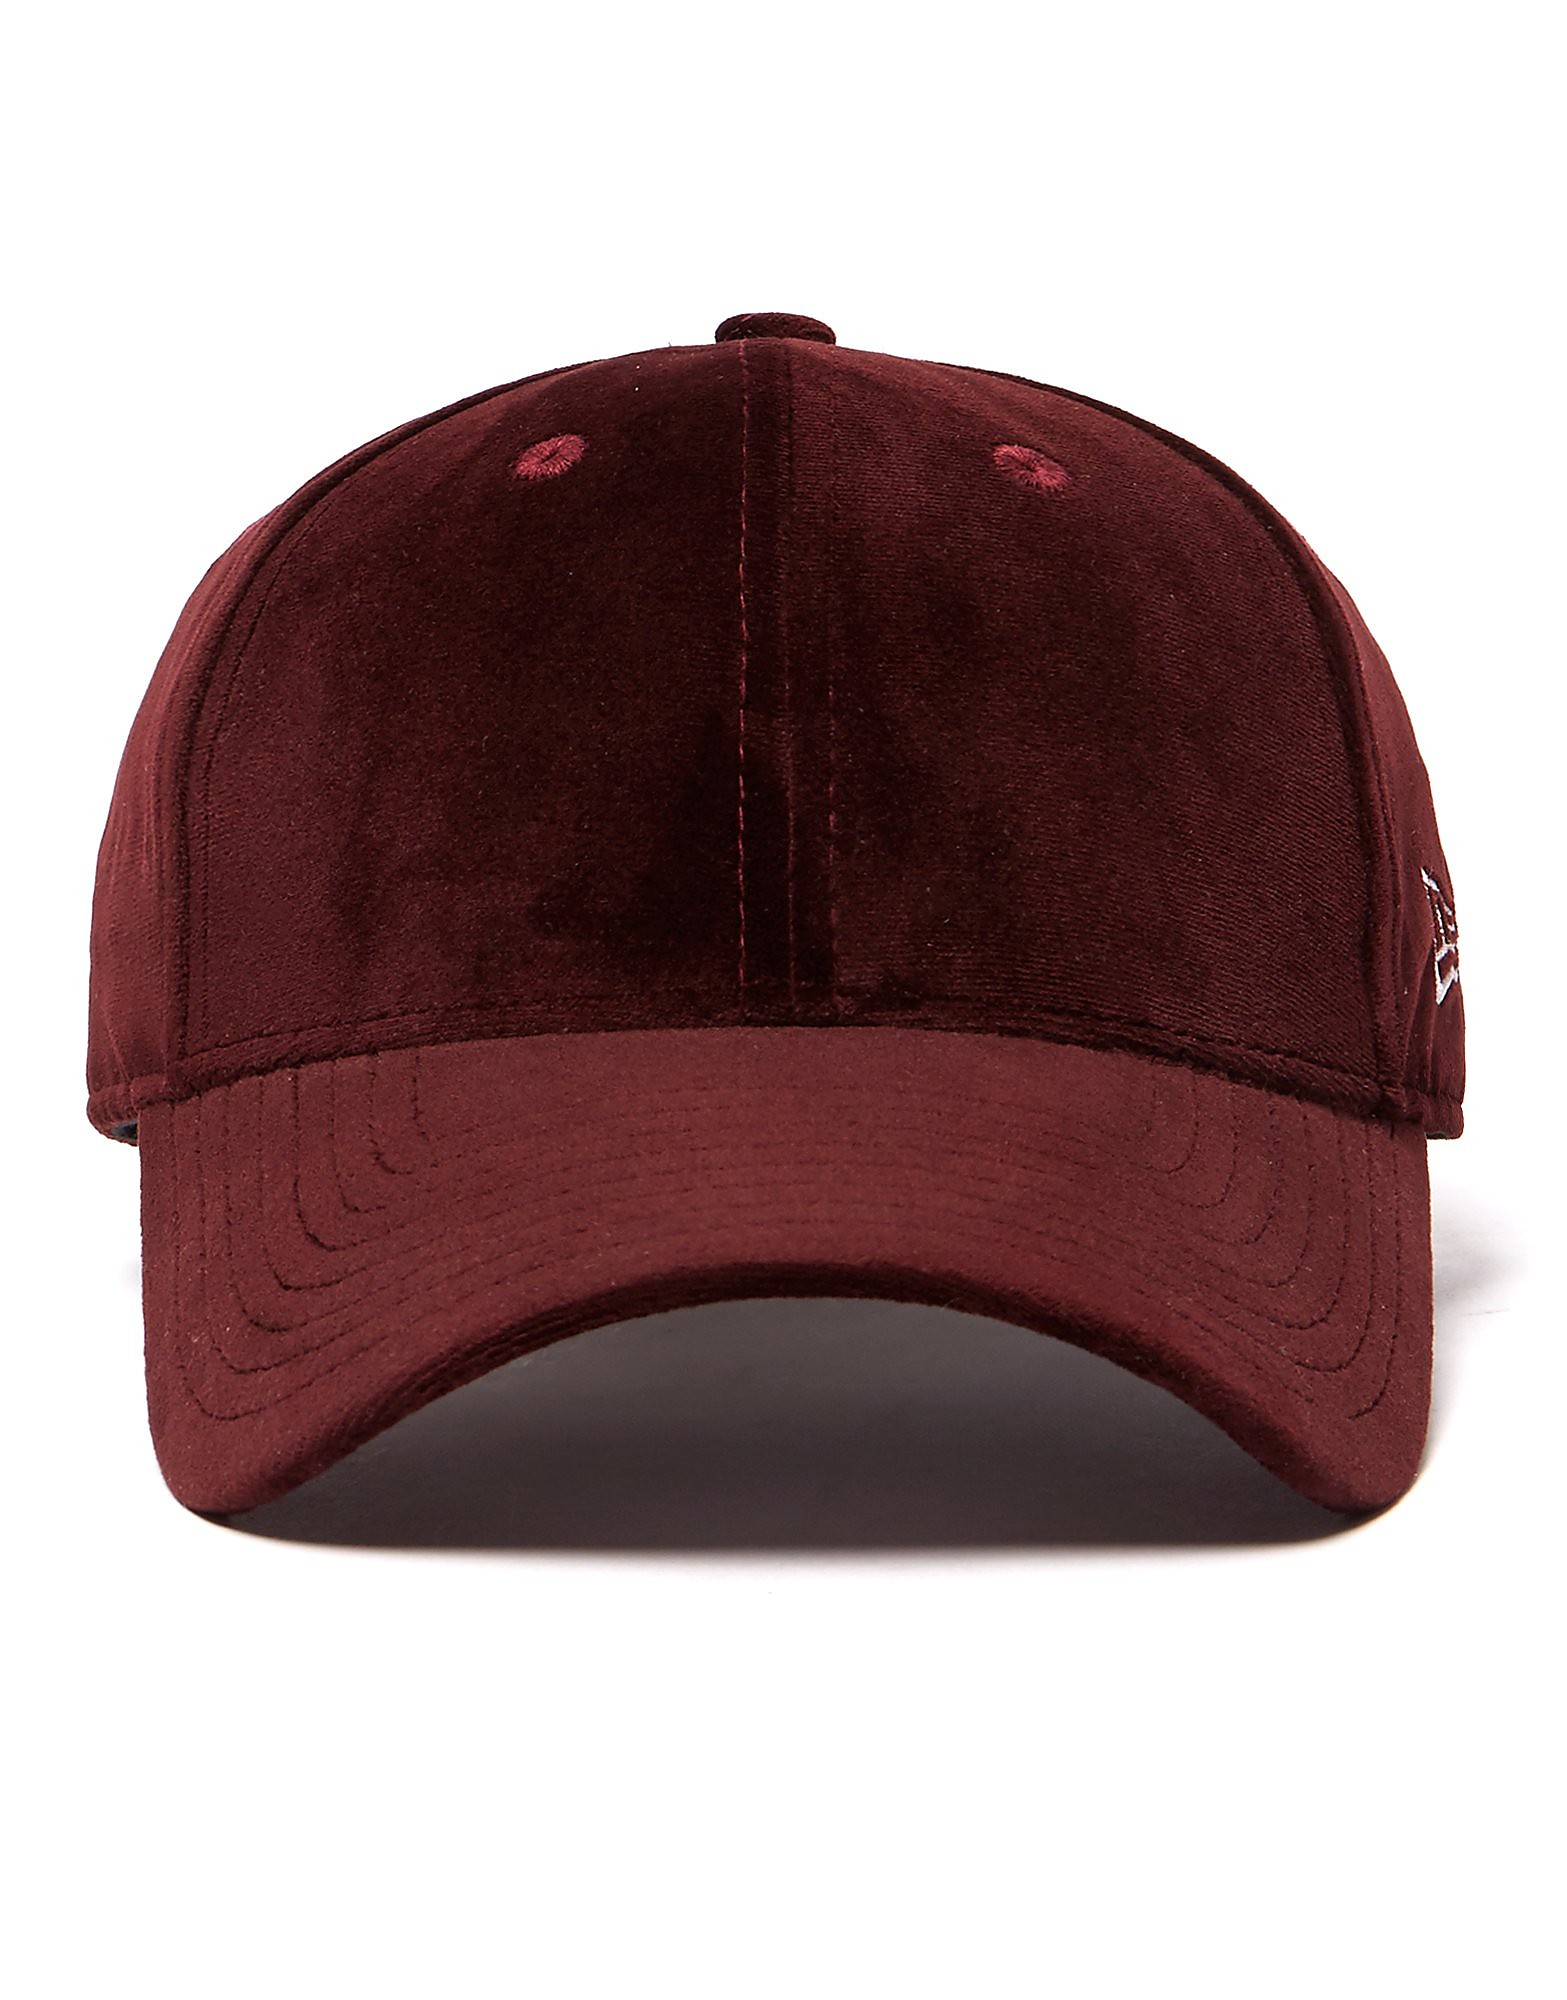 New Era Casquette 9FORTY Velour Homme